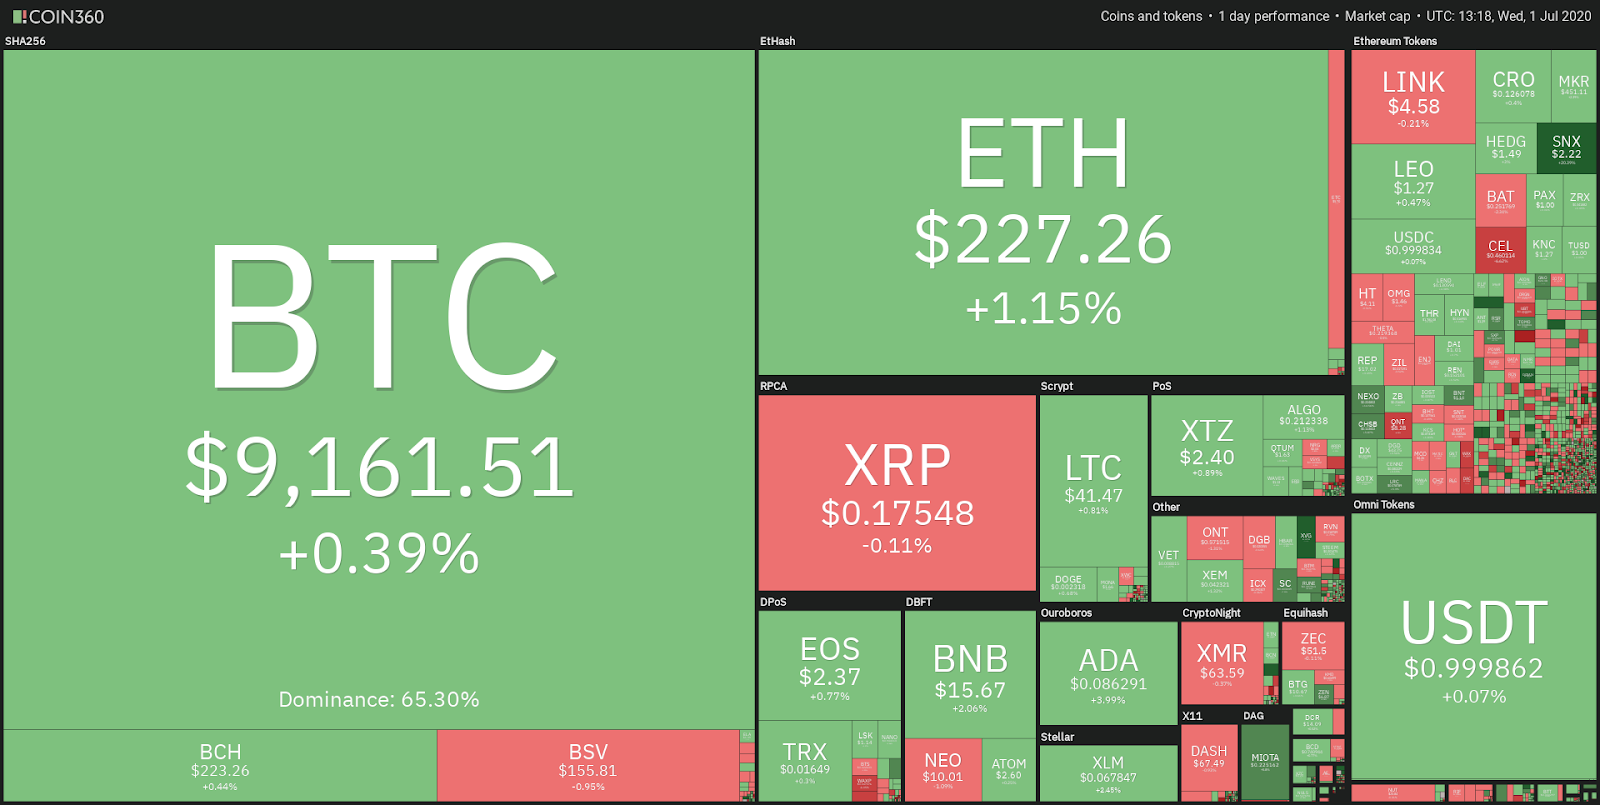 Daily performance of the crypto market. Source: Coin360.com